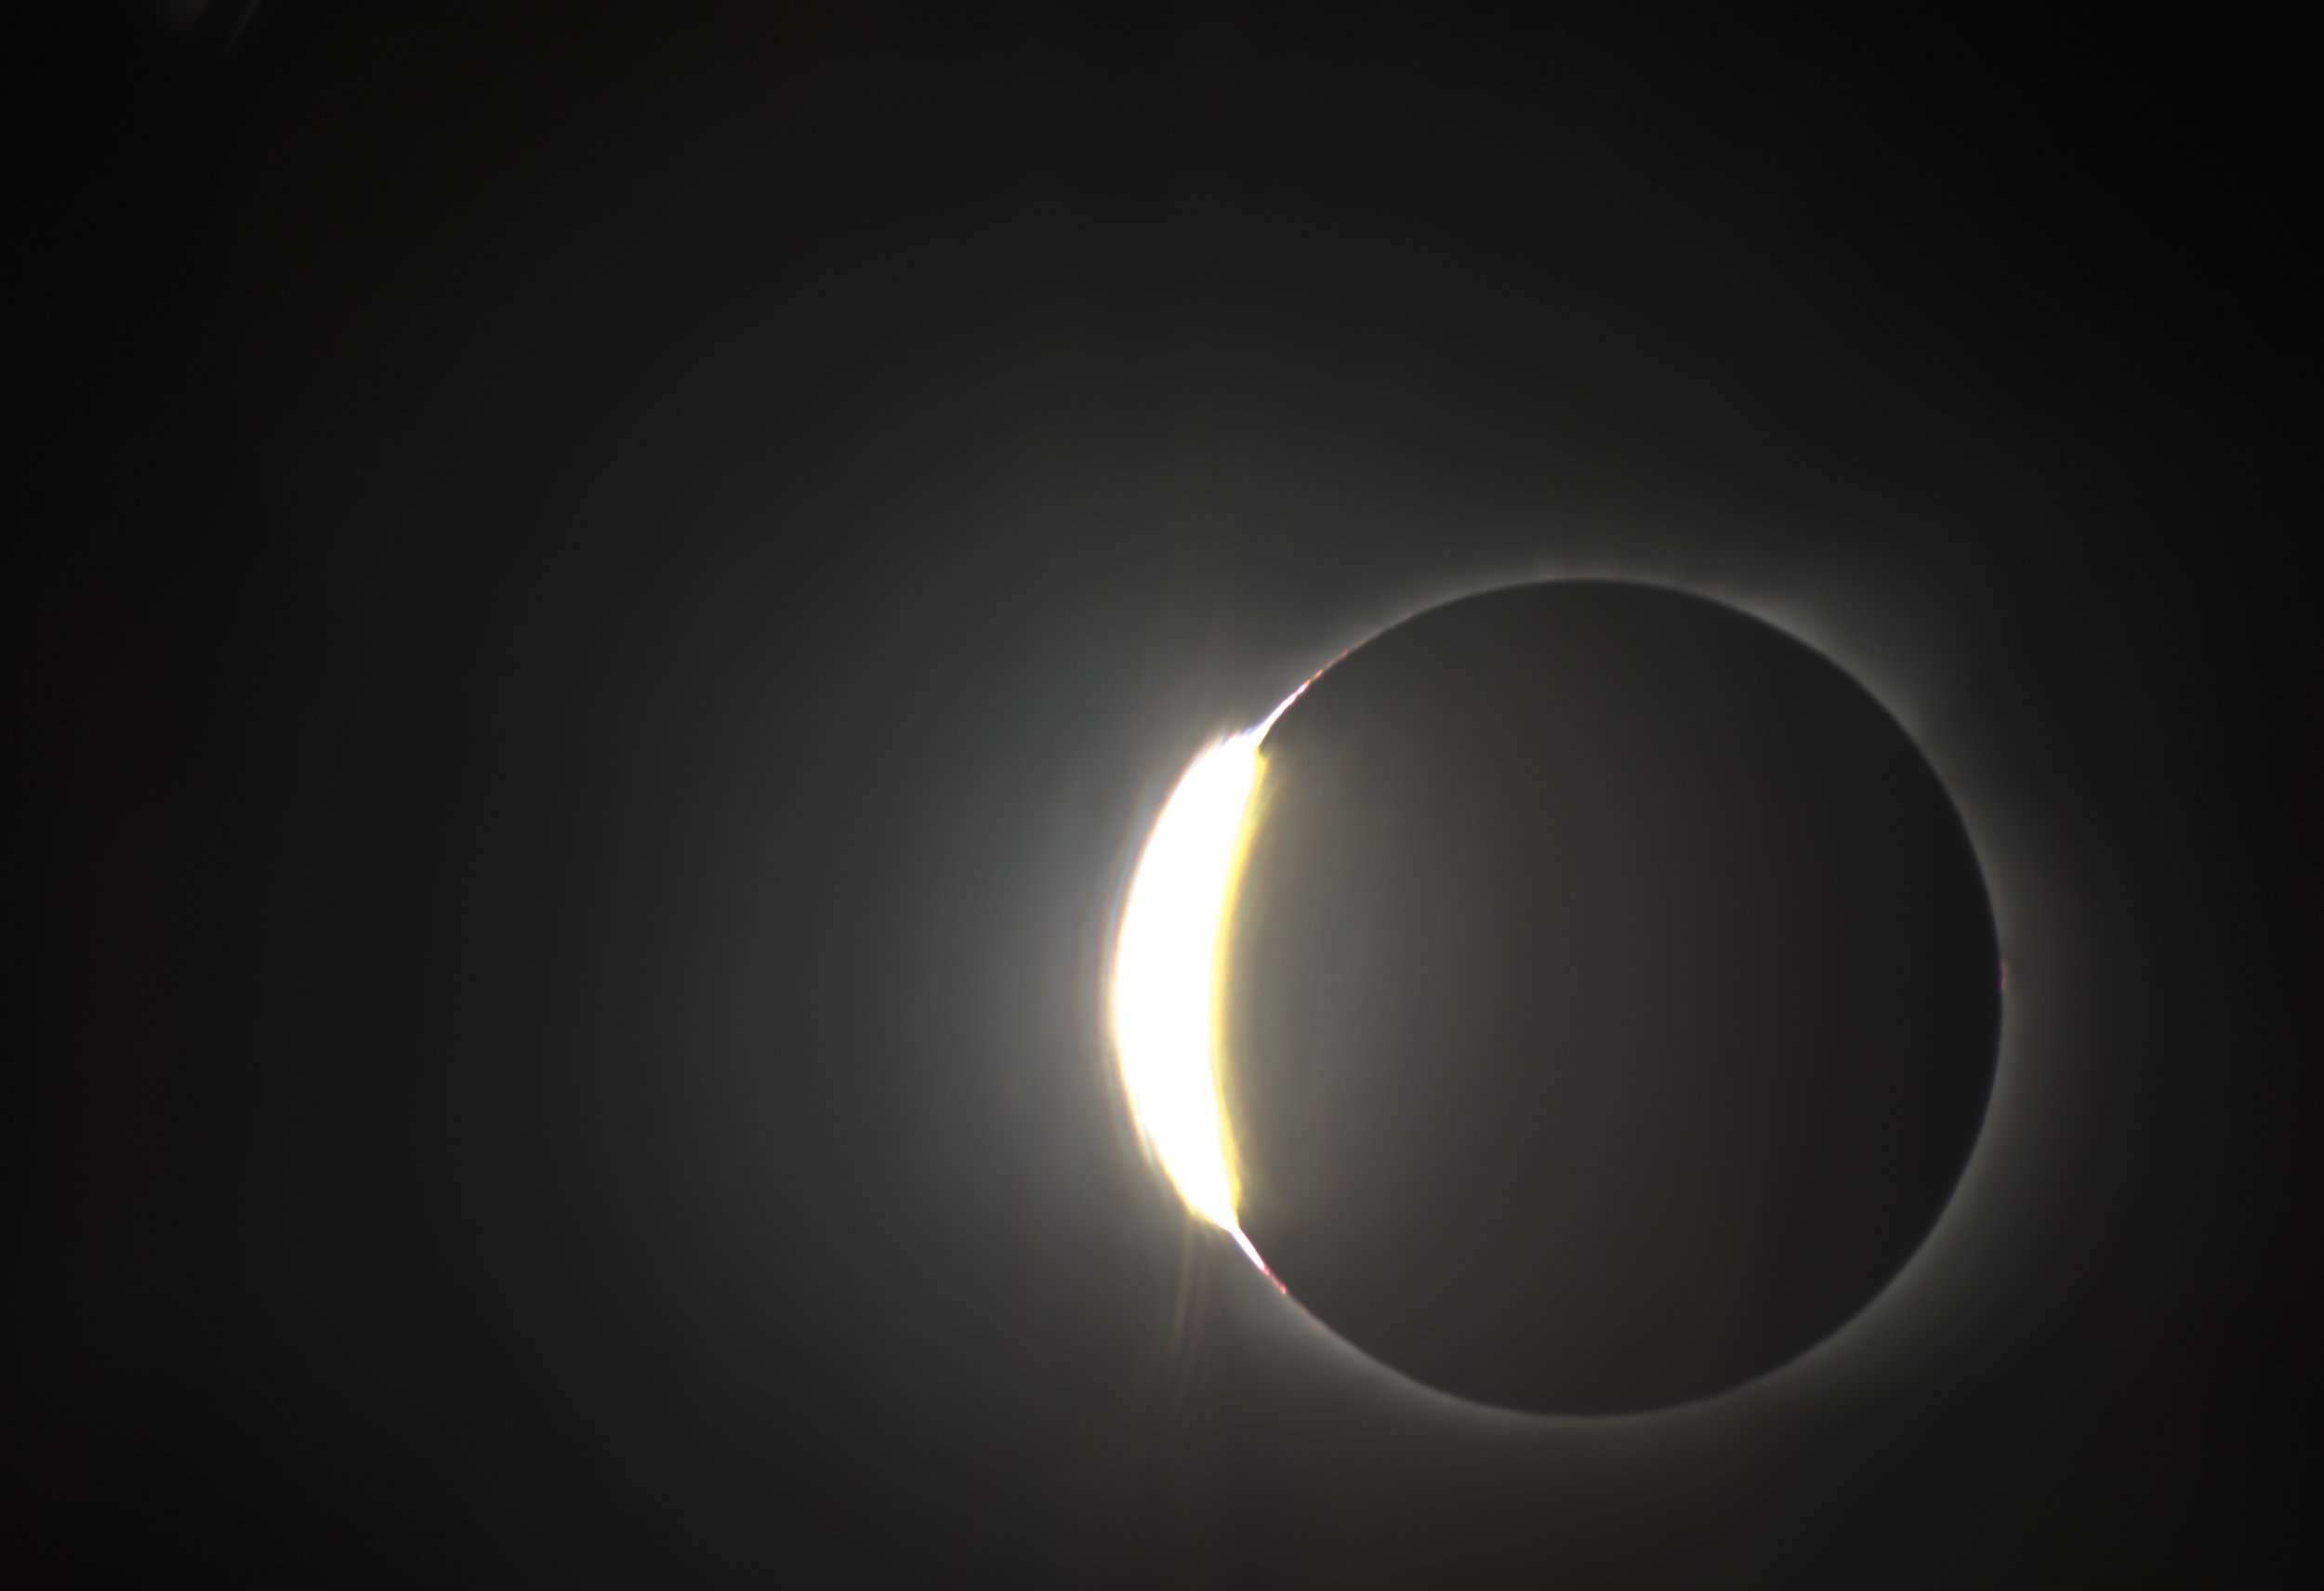 Totality, part 3